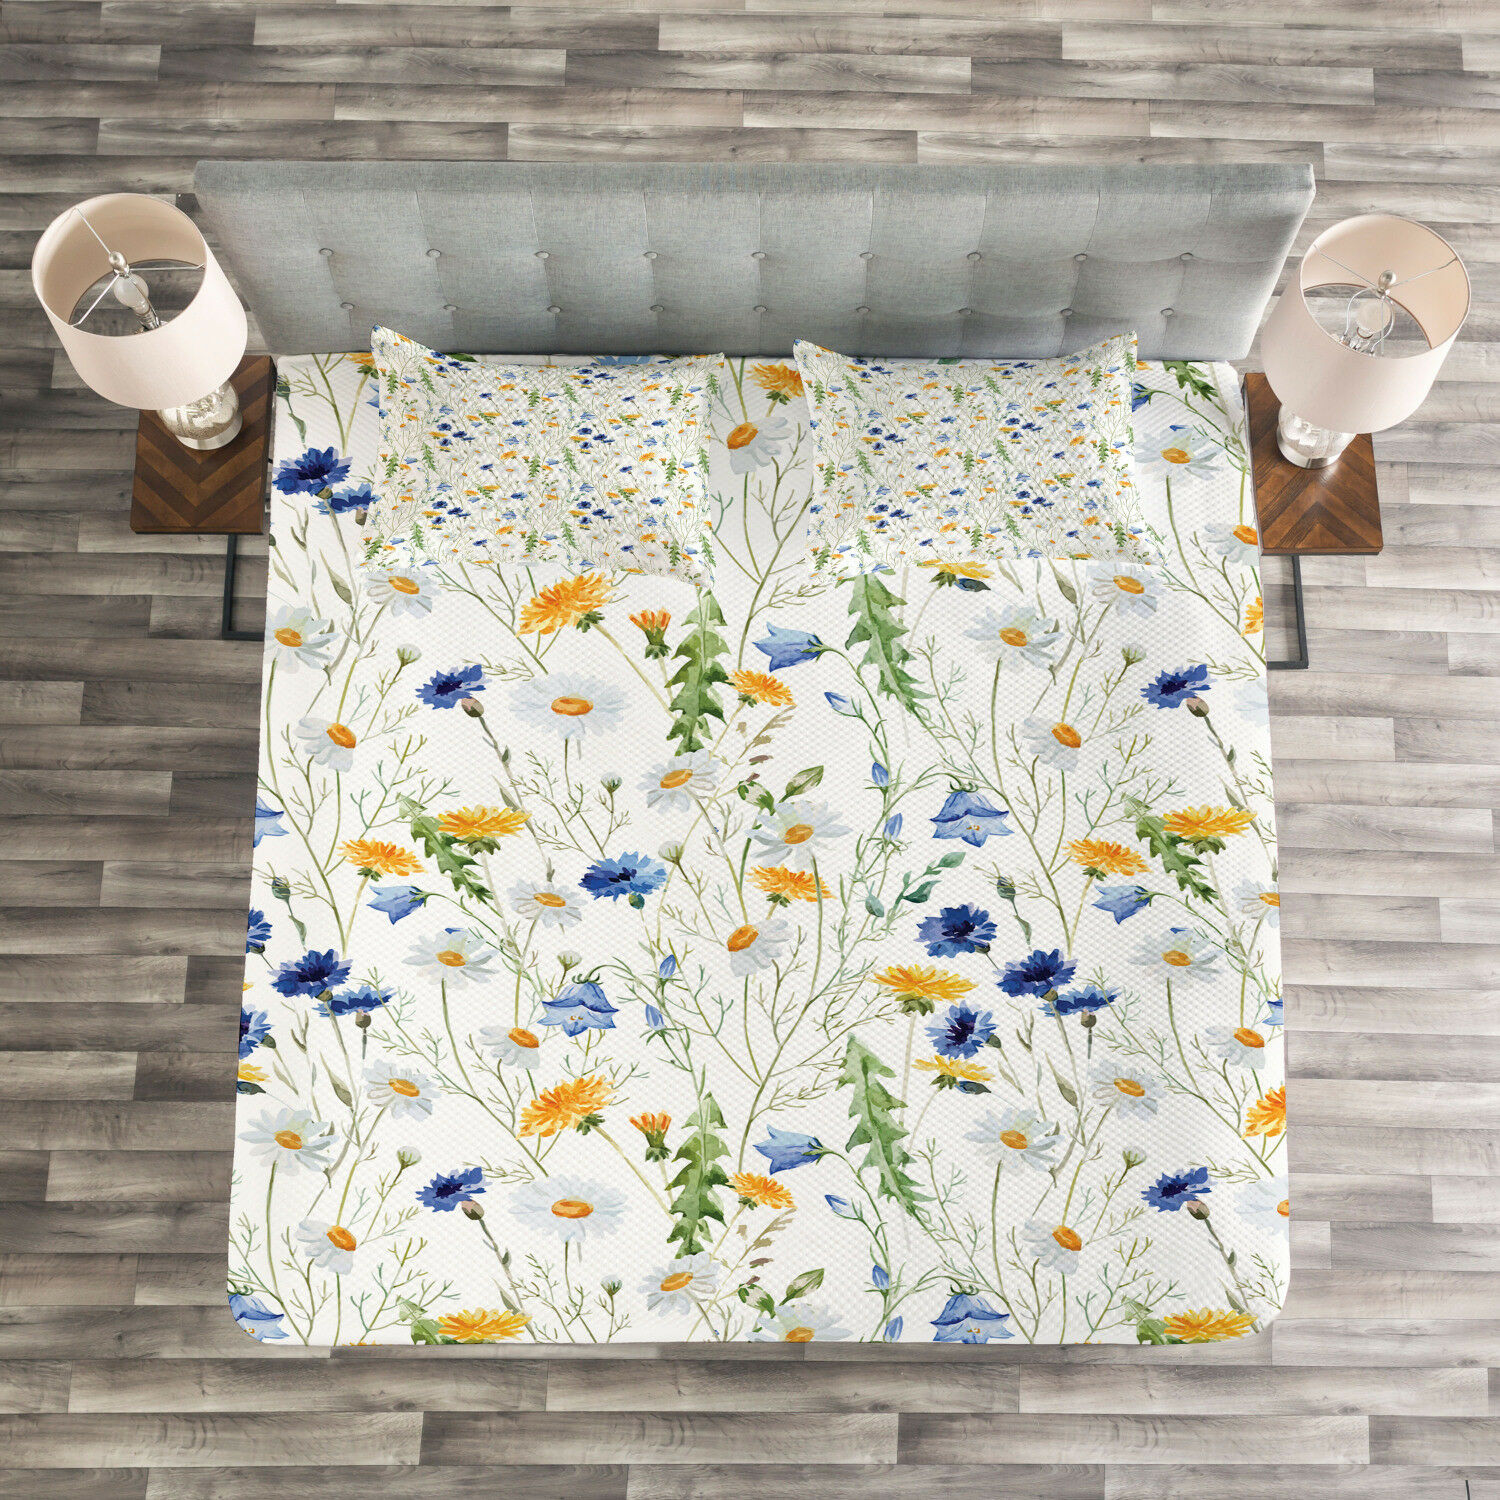 Nature Quilted Bedspread & Pillow Shams Set, Poppies Daisies Rural Print